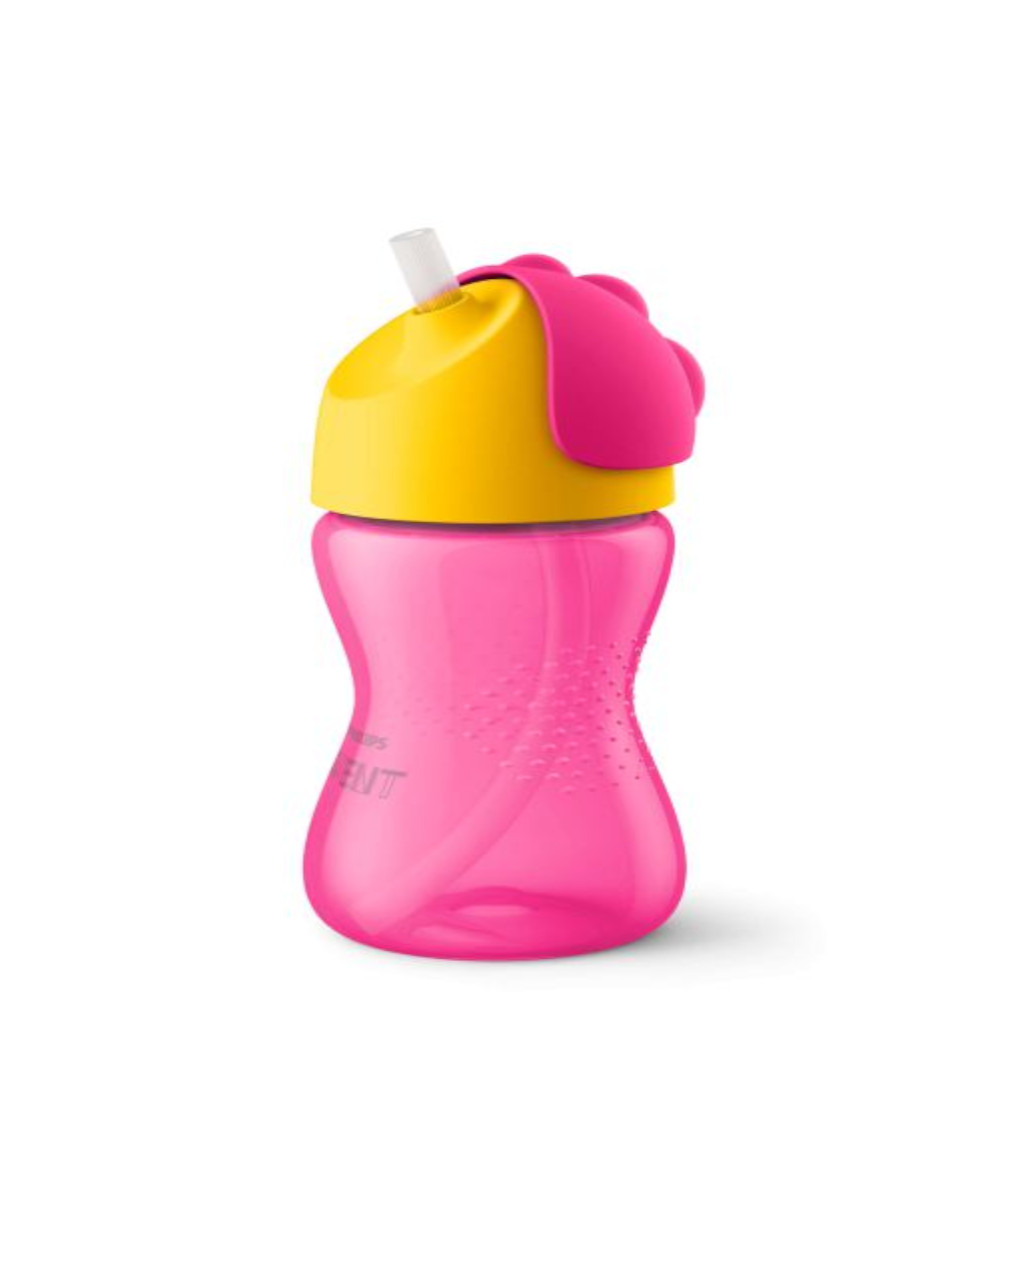 Tazza colorata rosa 300ml - Avent